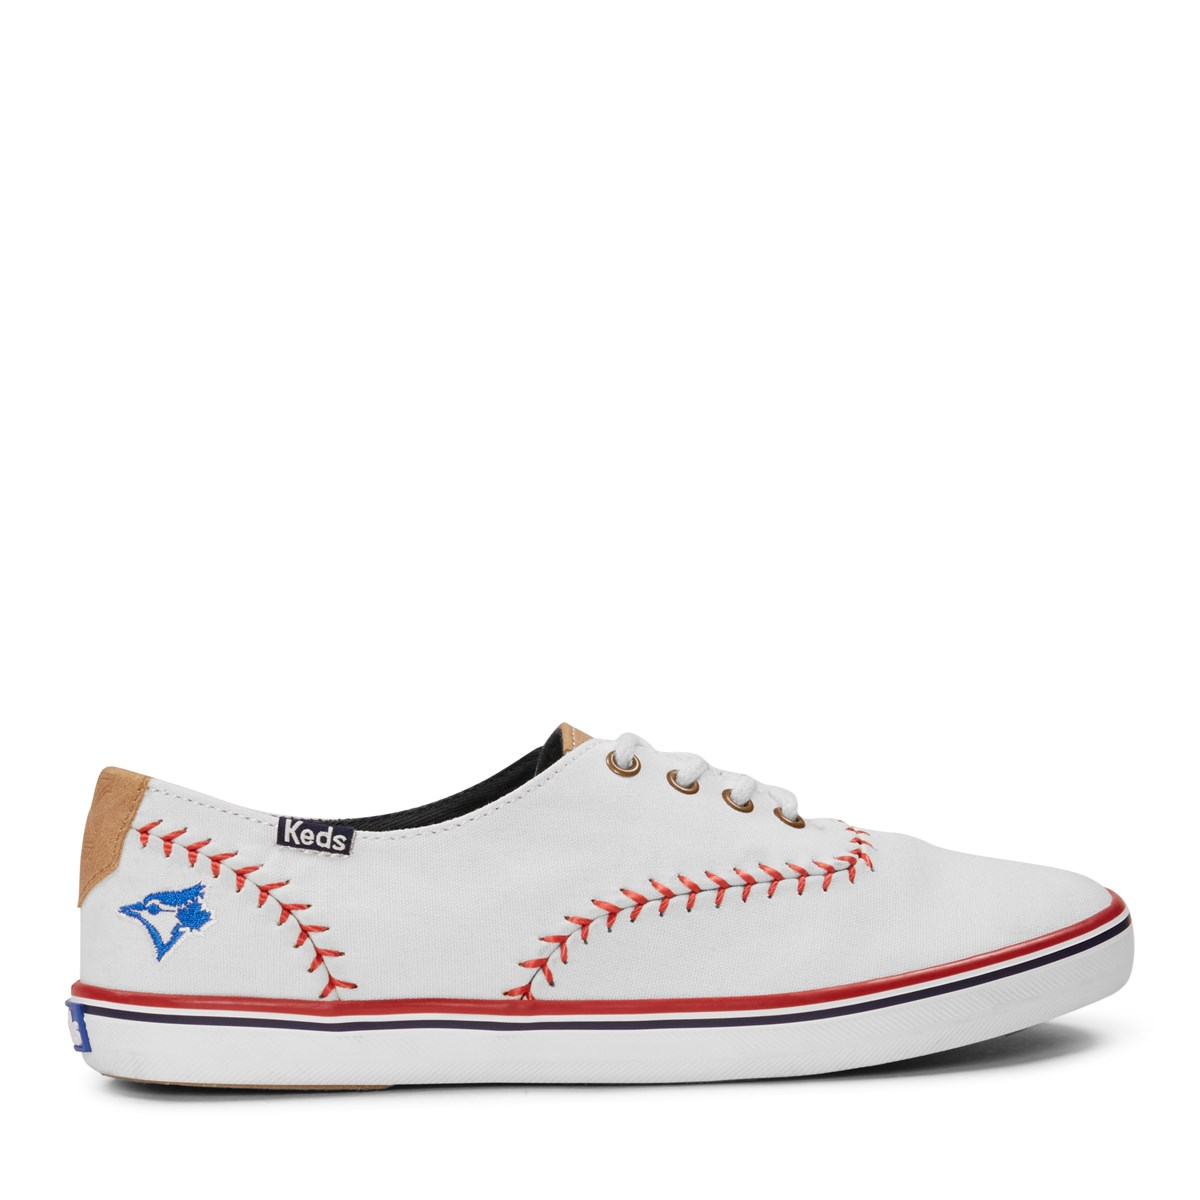 4c629eea203072 Women s Champion Pennant MLB Blue Jays Sneakers. Previous. default view ...